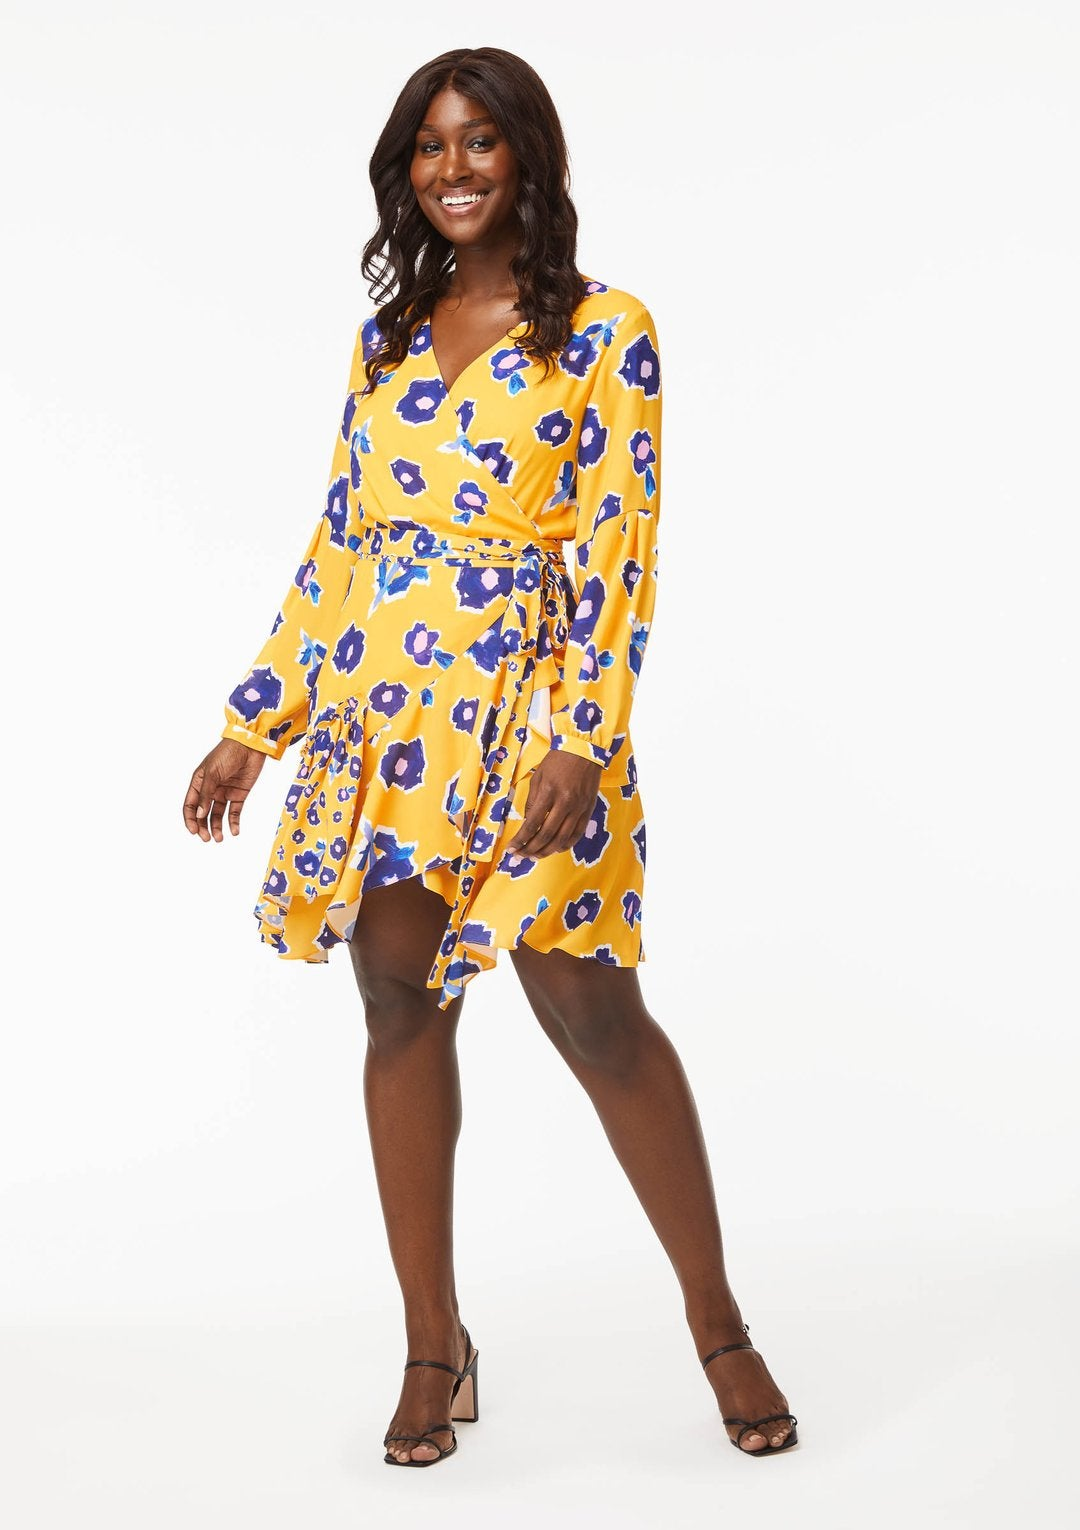 Model wearing yellow-gold dress with blue flowers on it